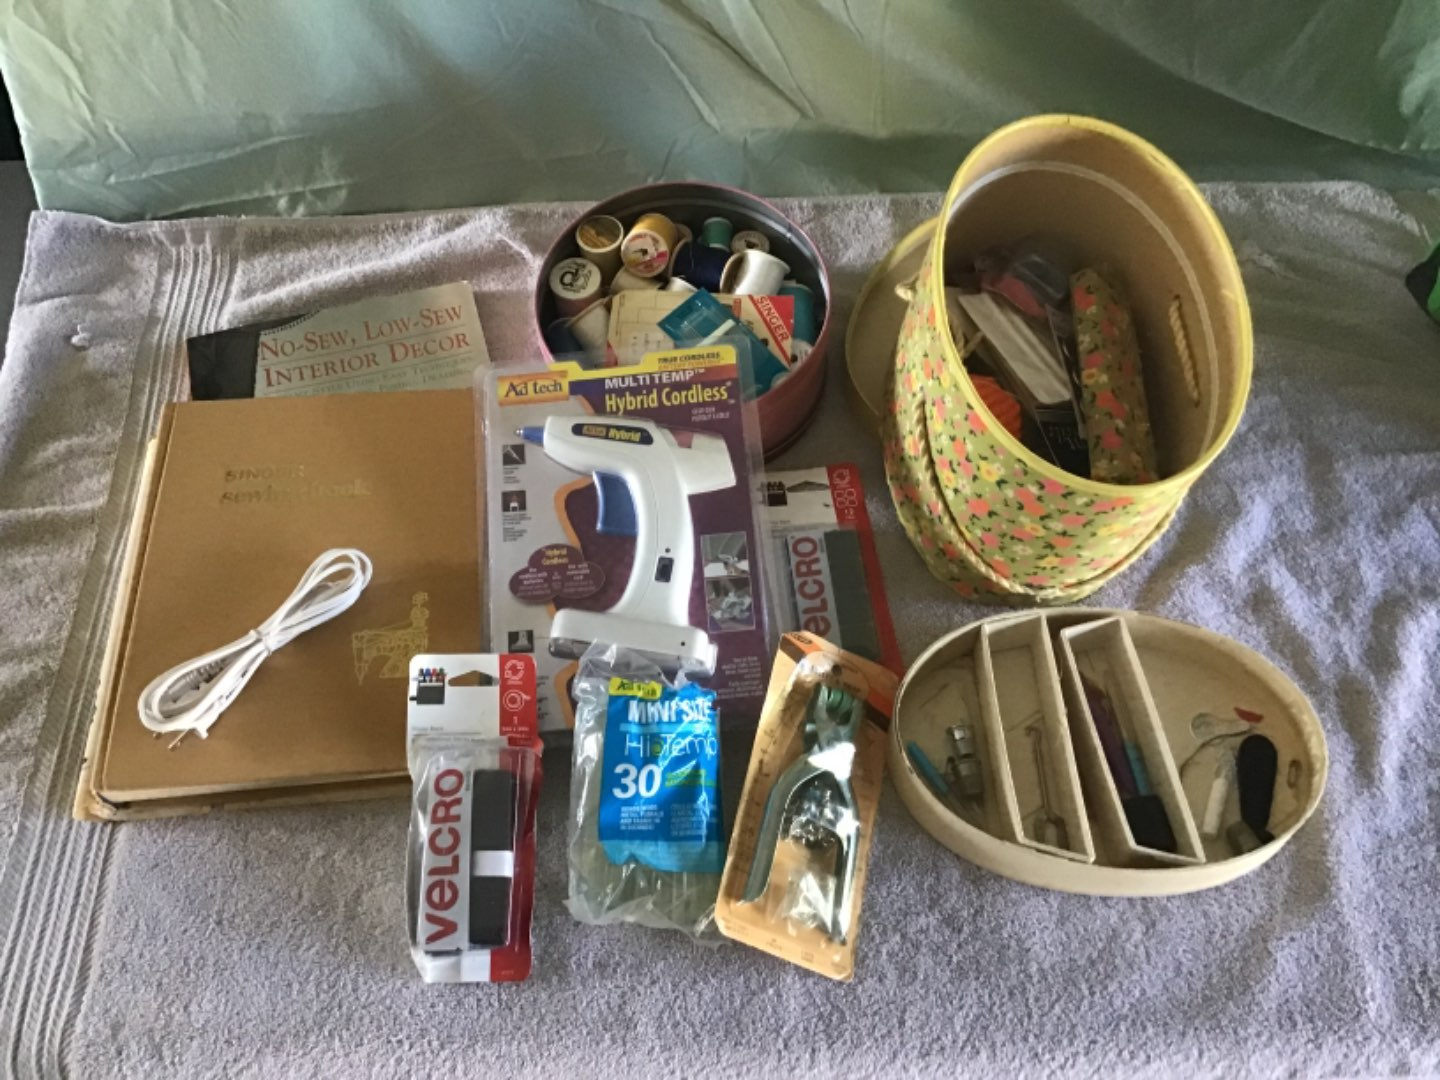 Lot # 218 Nice Big Sewing Lot - Everything from Thread to Glue Gun! Vintage Singer Sewing Book, etc.